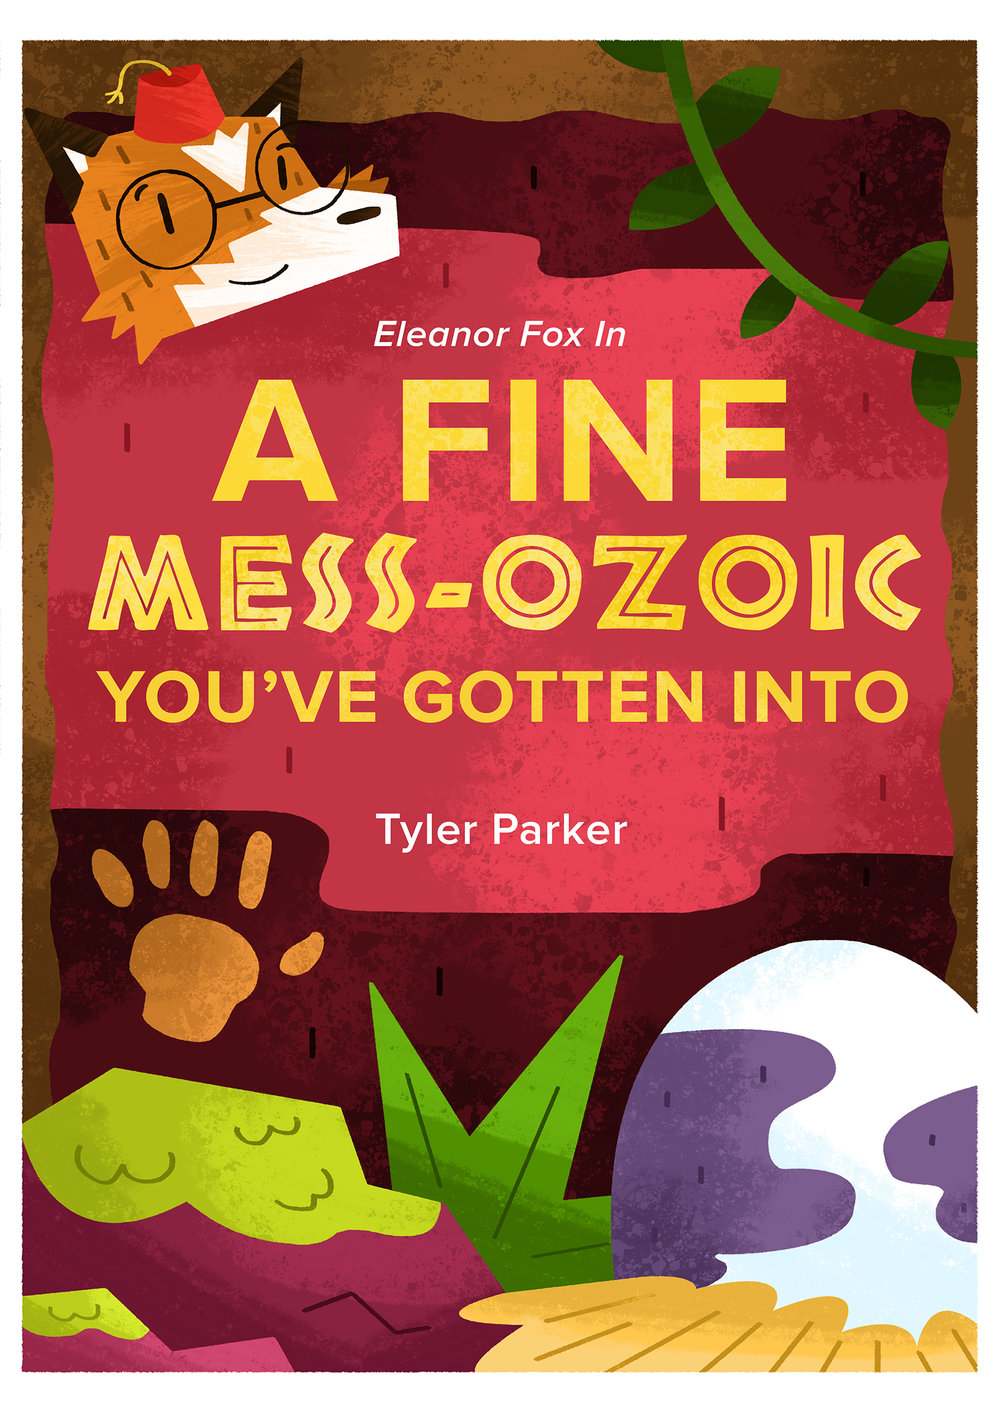 A Fine Mess-Ozoic You've Gotten Into